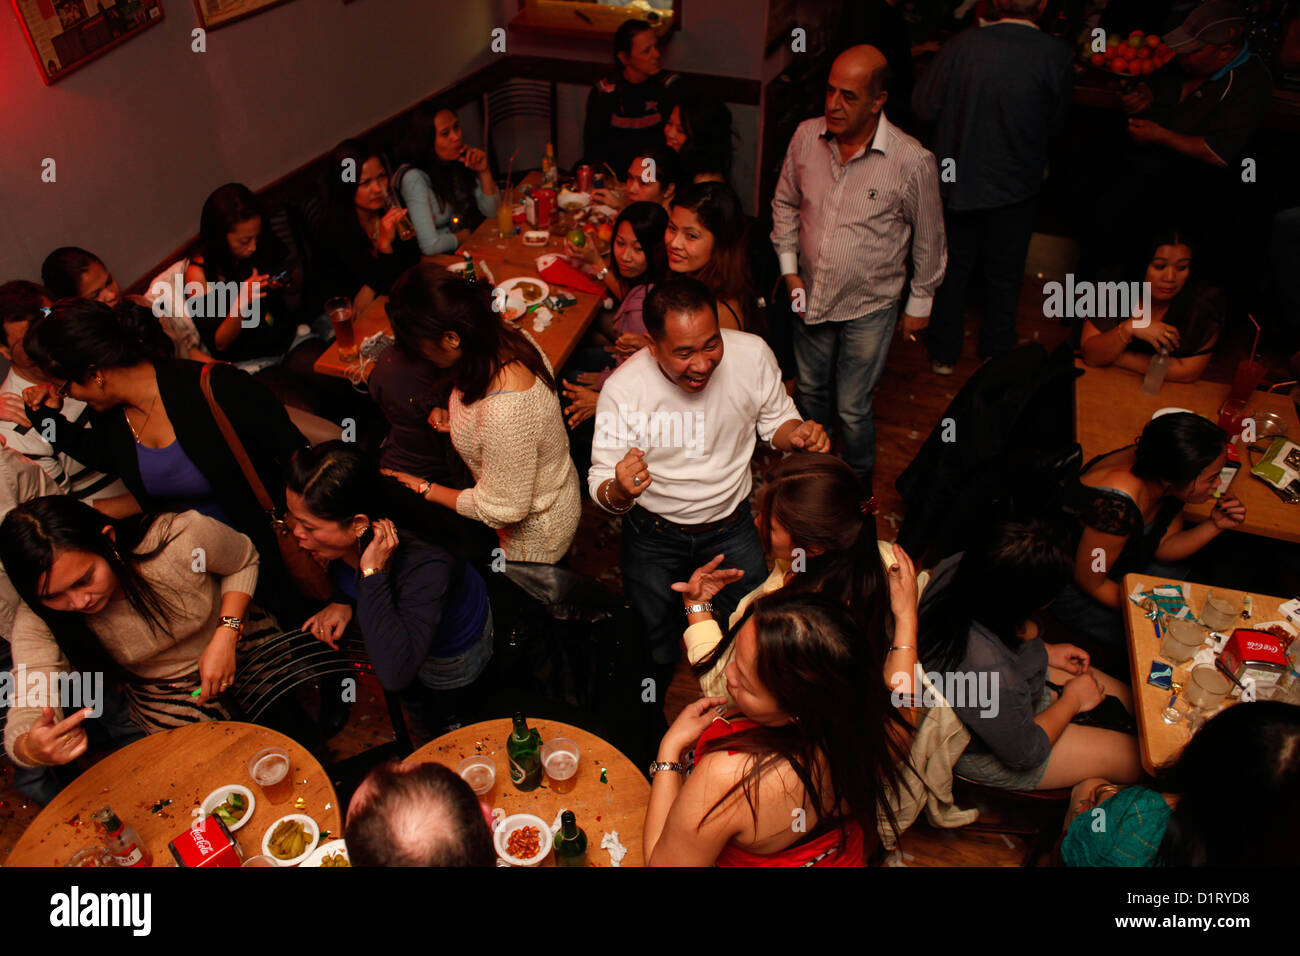 Easier tell, Philippine bar pics much prompt